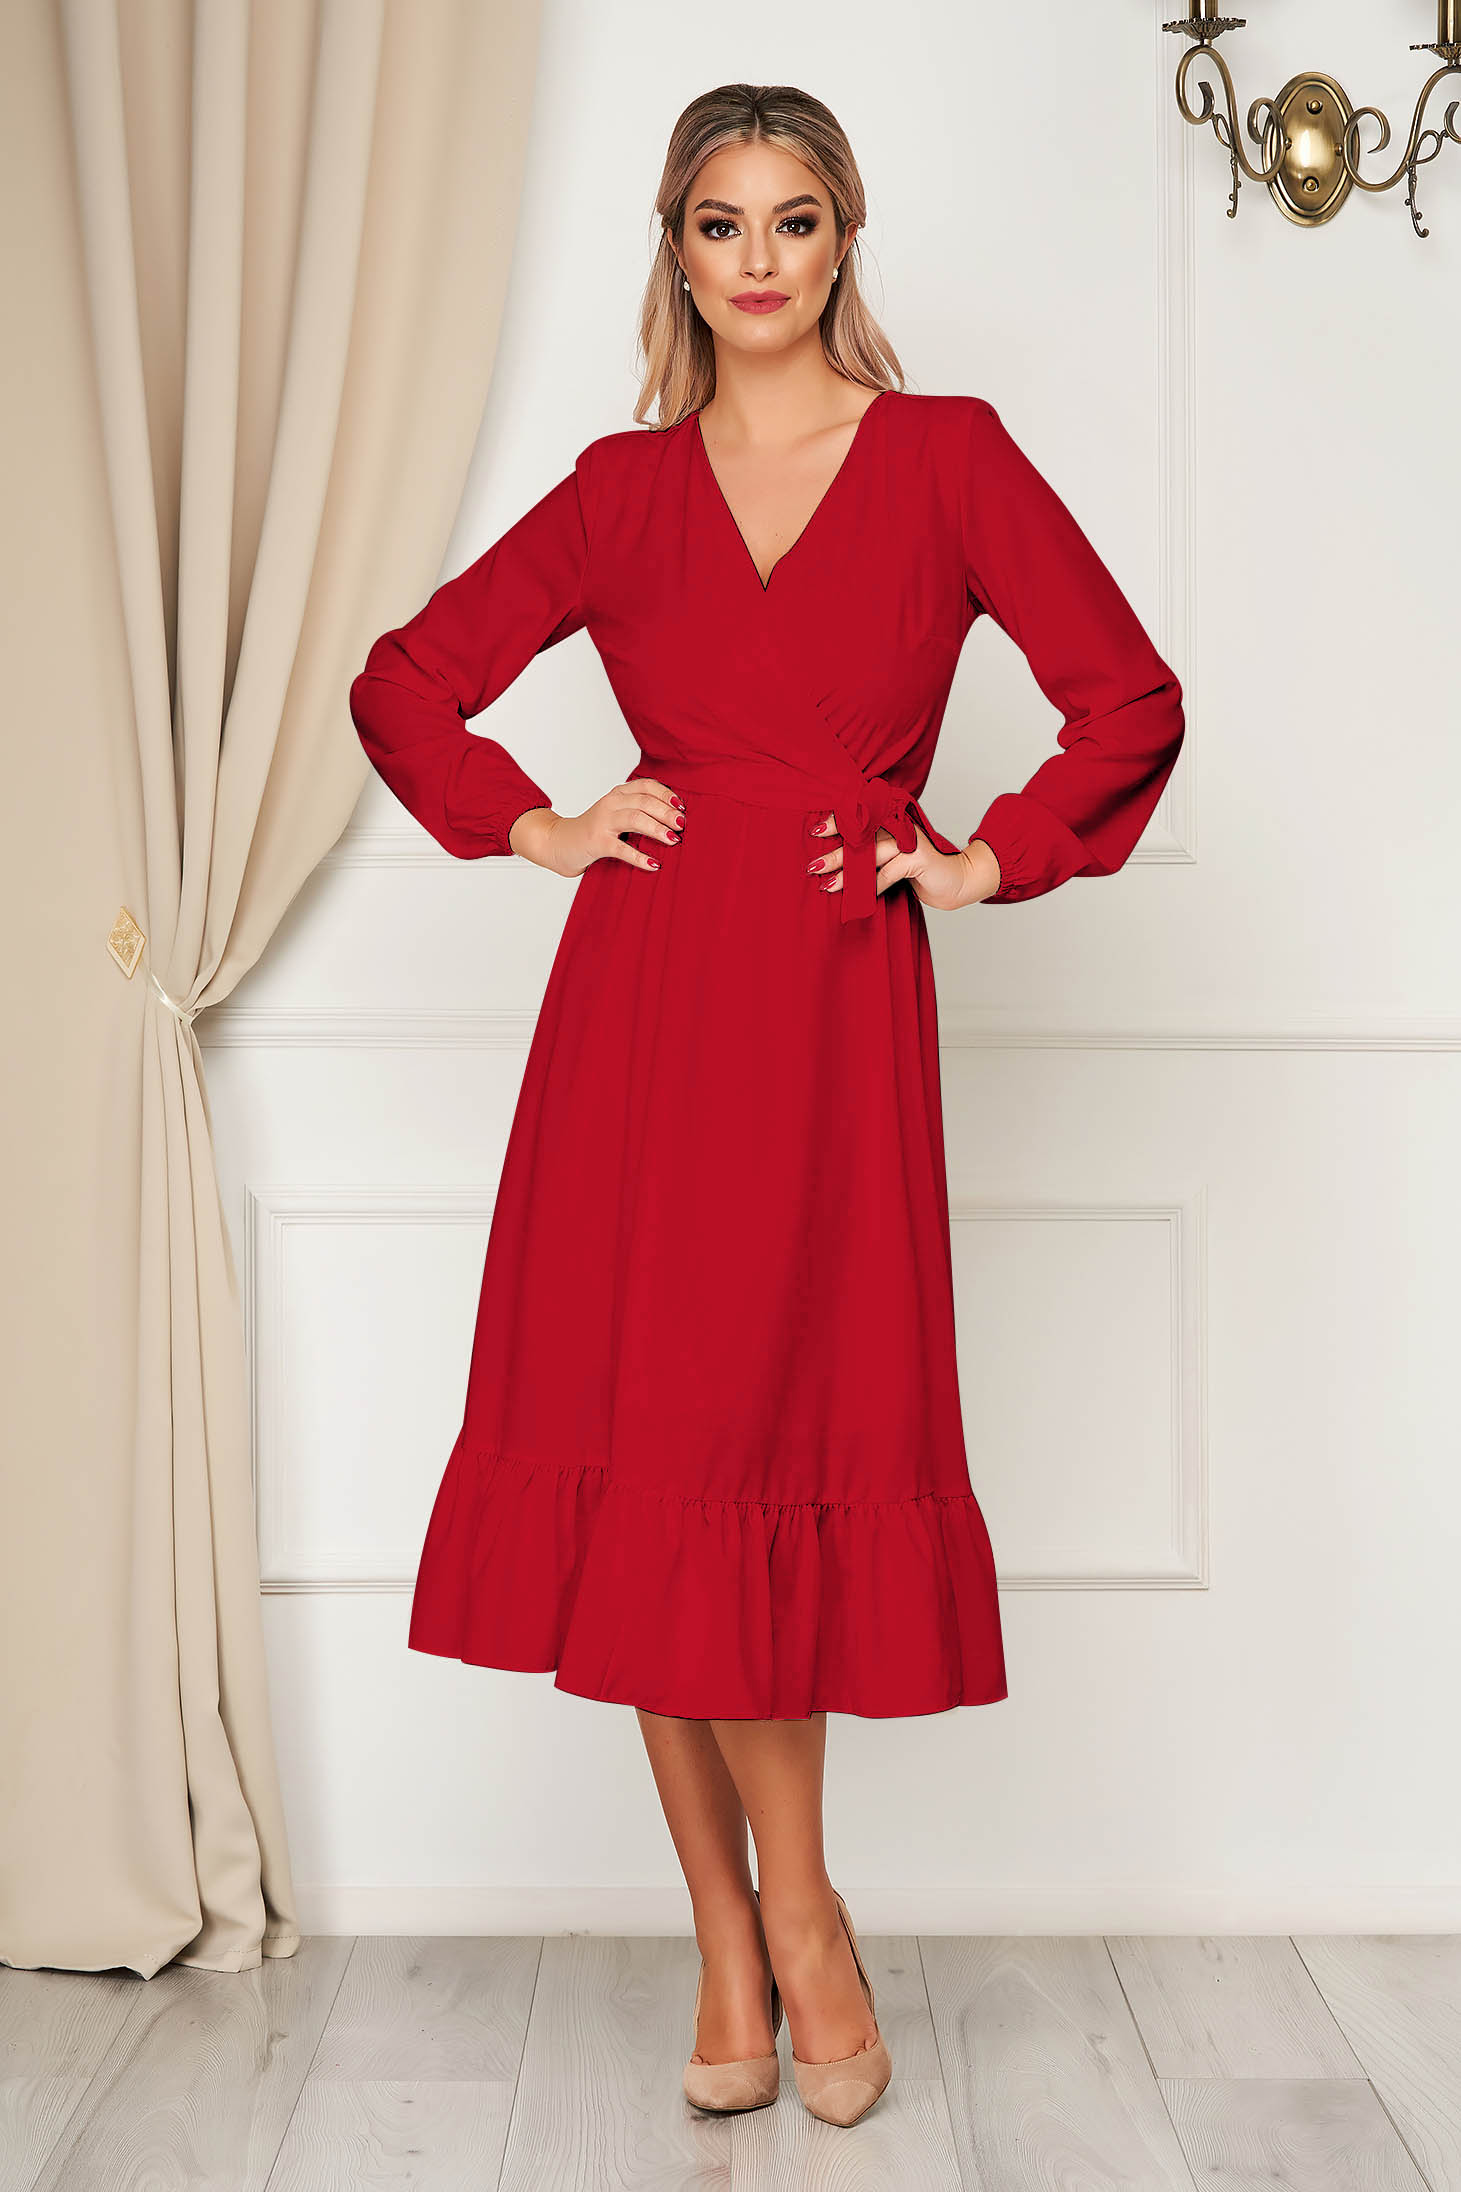 Dress StarShinerS red elegant midi wrap over front with elastic waist accessorized with tied waistband